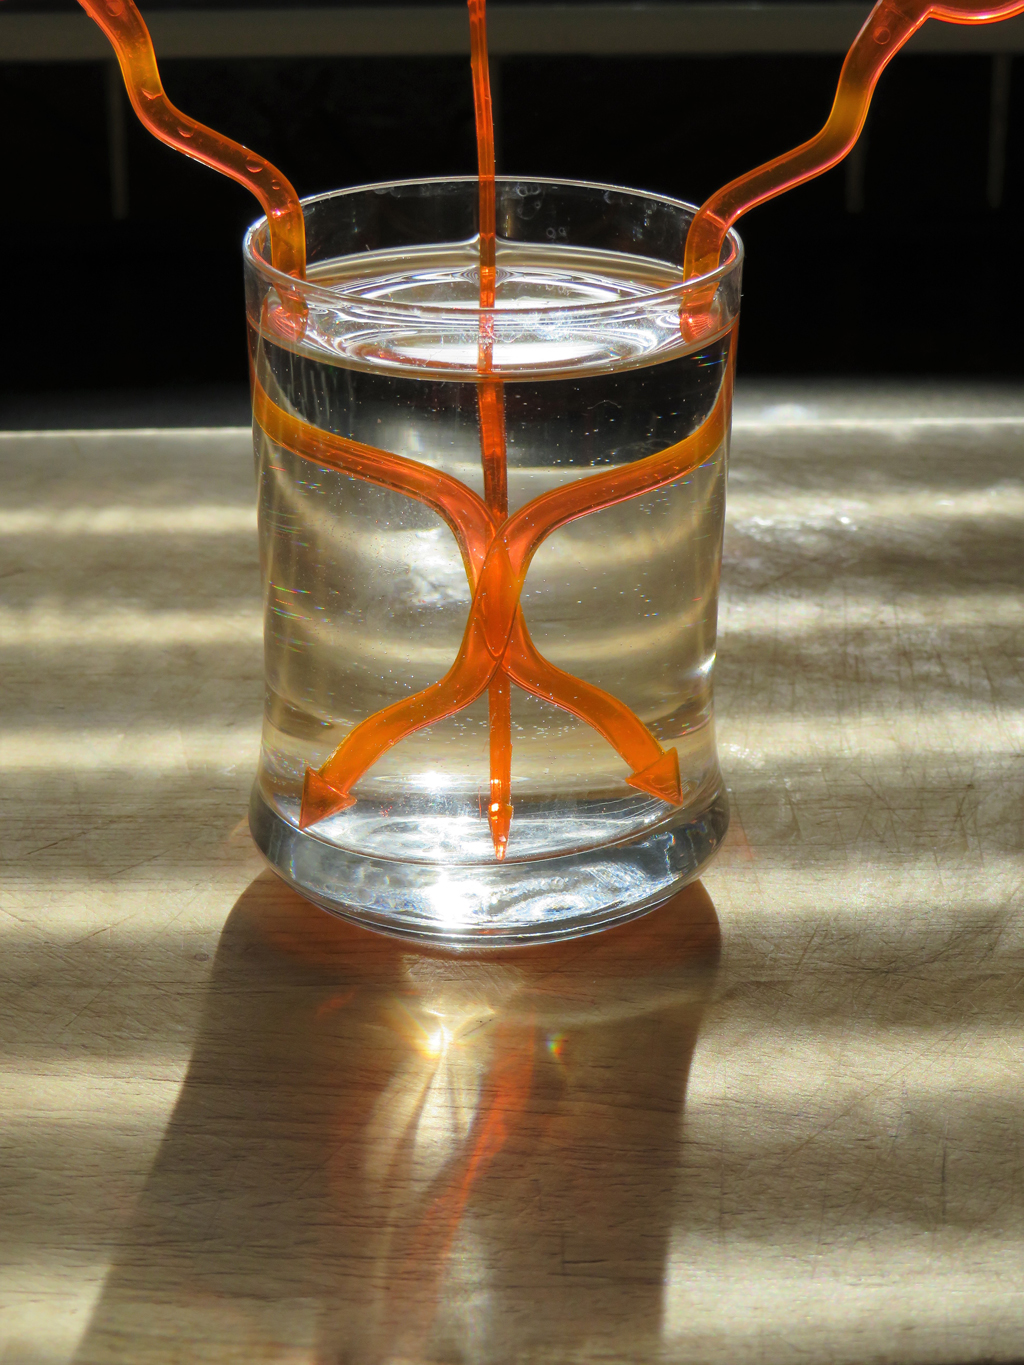 Glass with straws by Phil Gregory